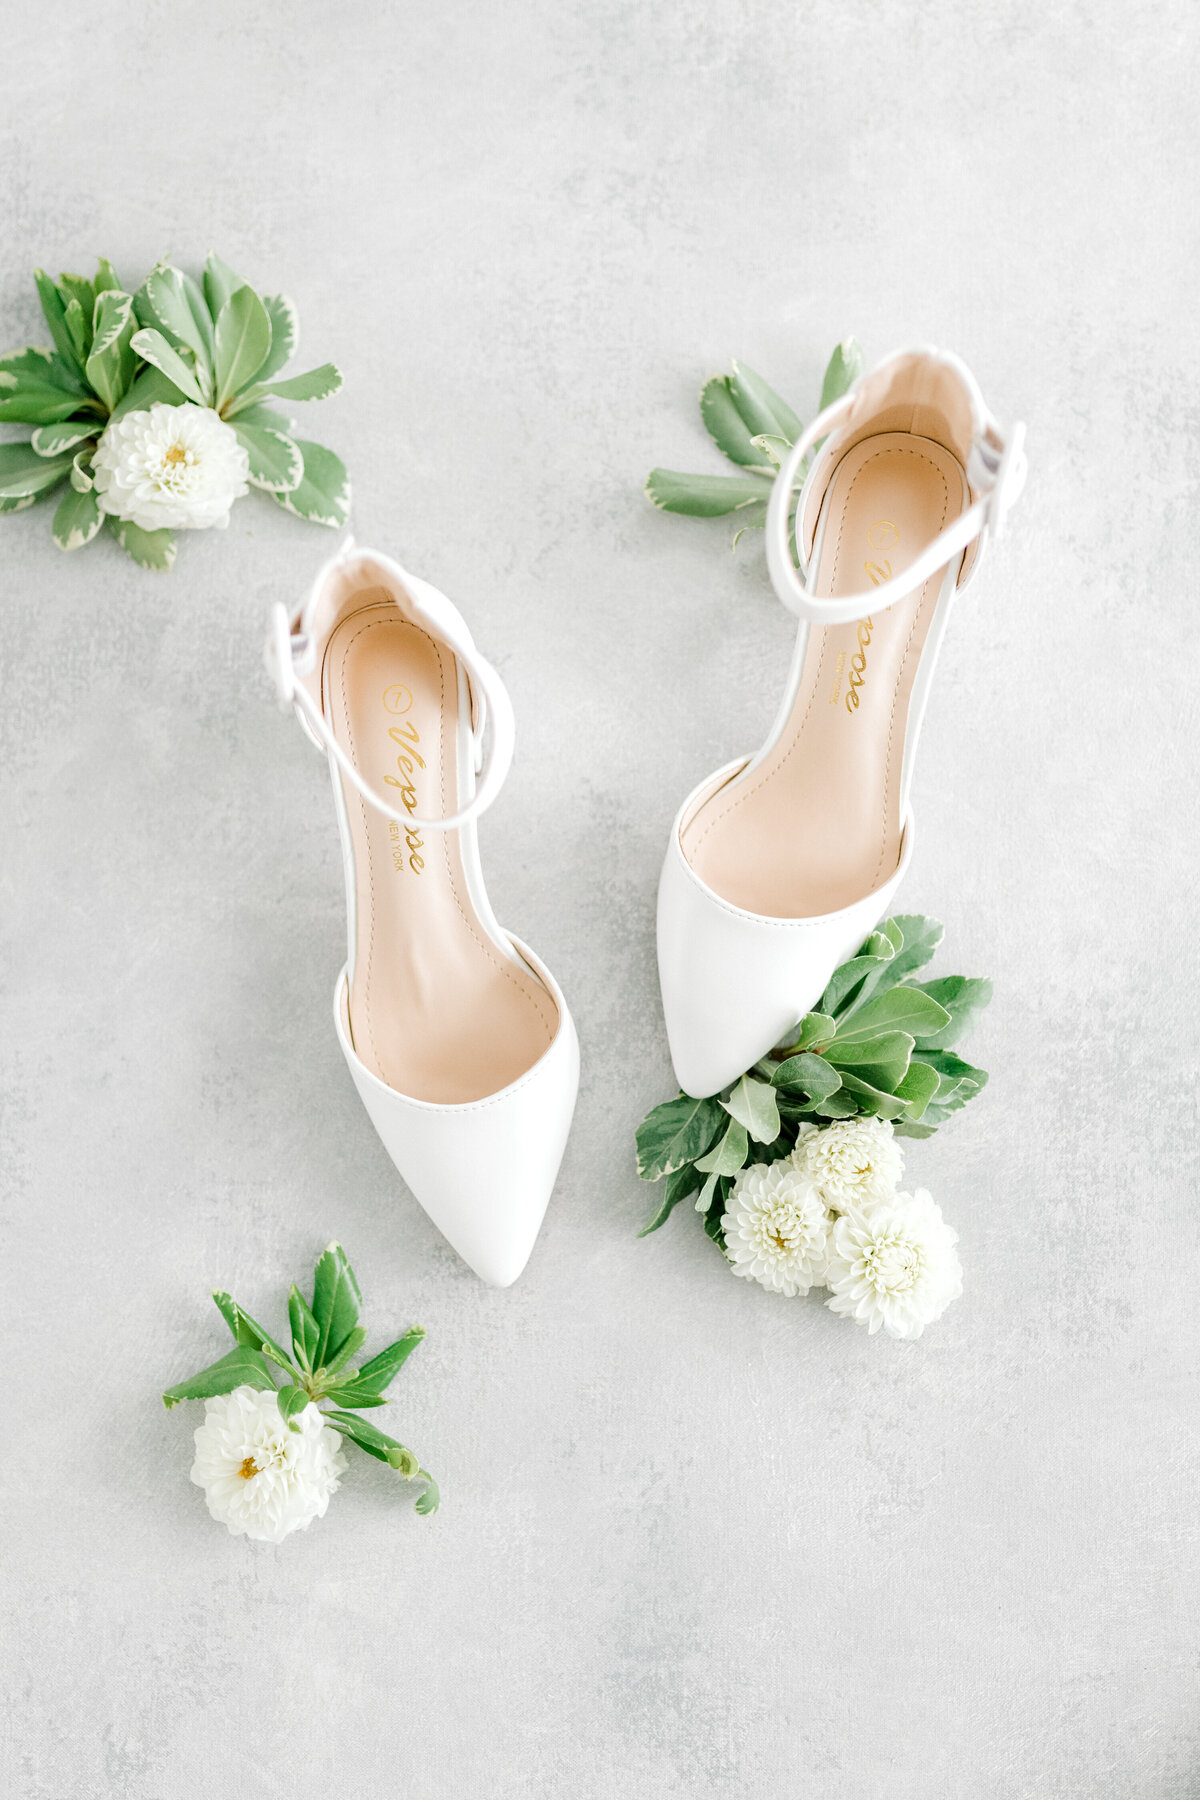 Minnesota wedding photographer, Minneapolis wedding photographer, MN wedding photographer, MN photographer, Wedding shoes